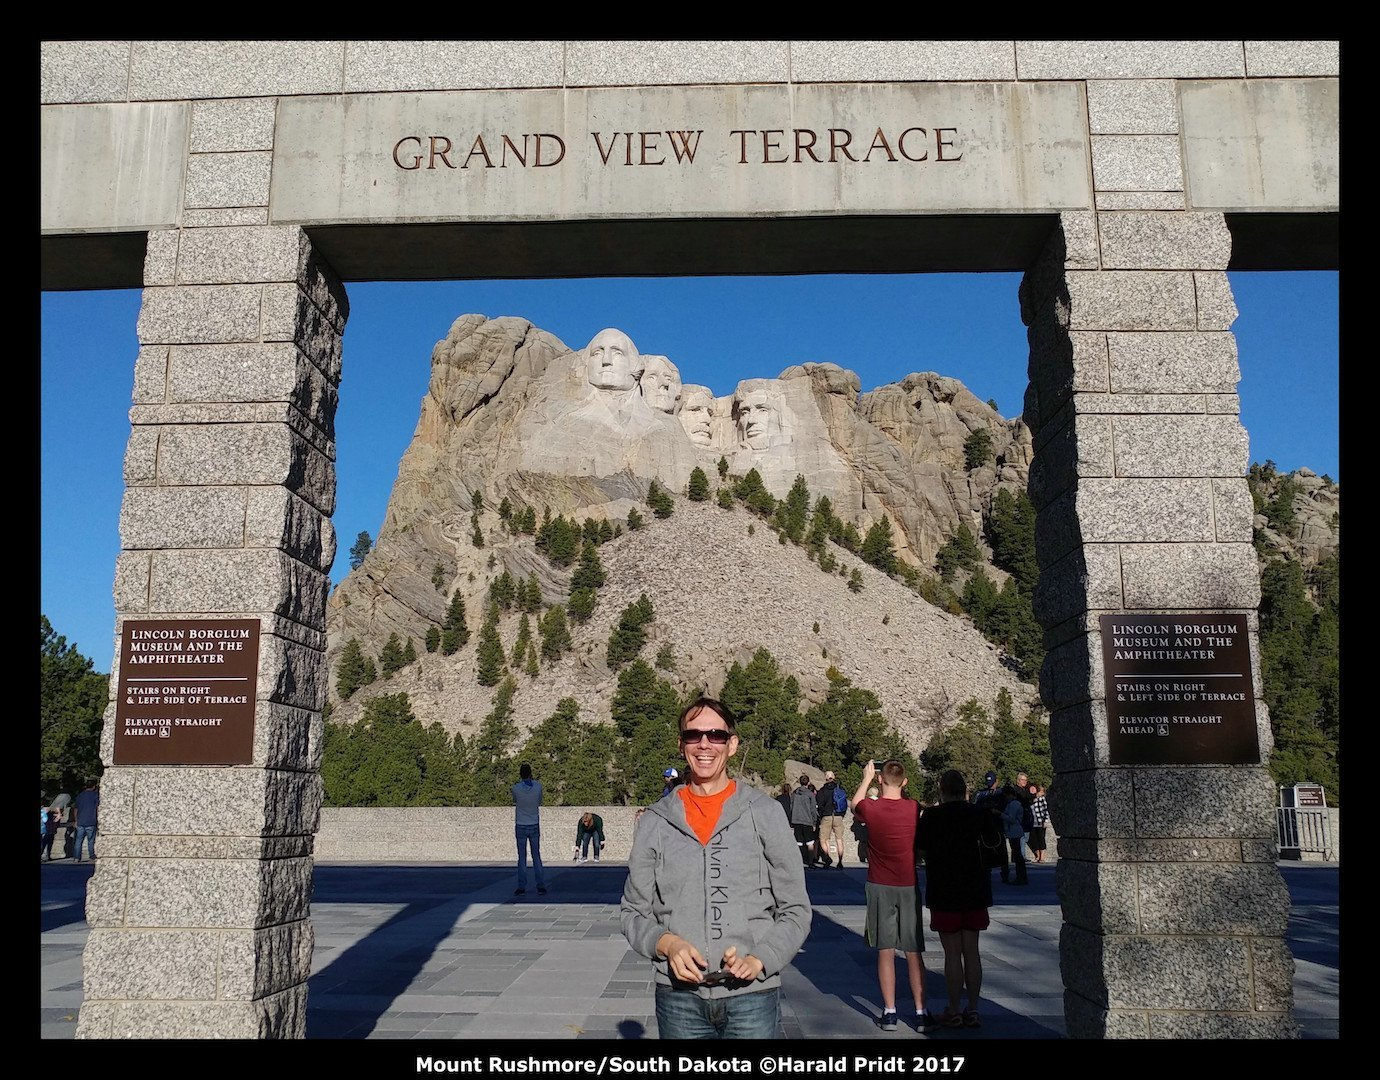 USA Road Trip Quer Etappen Mount Rushmore South Dacota Grand View